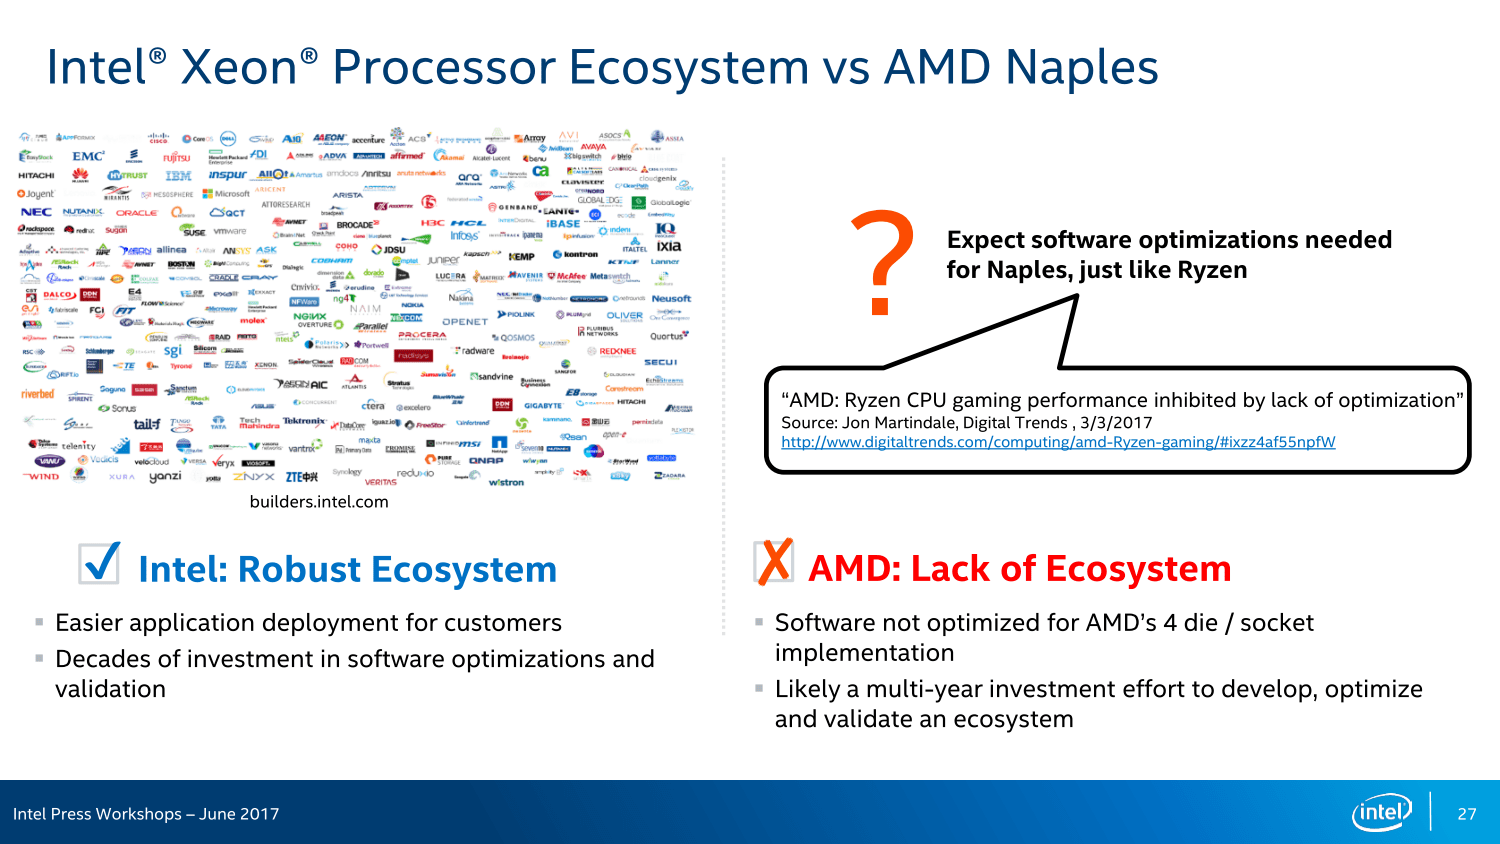 Intel Finally Replies to AMD Naples - Points Out HPC Achilles Heel